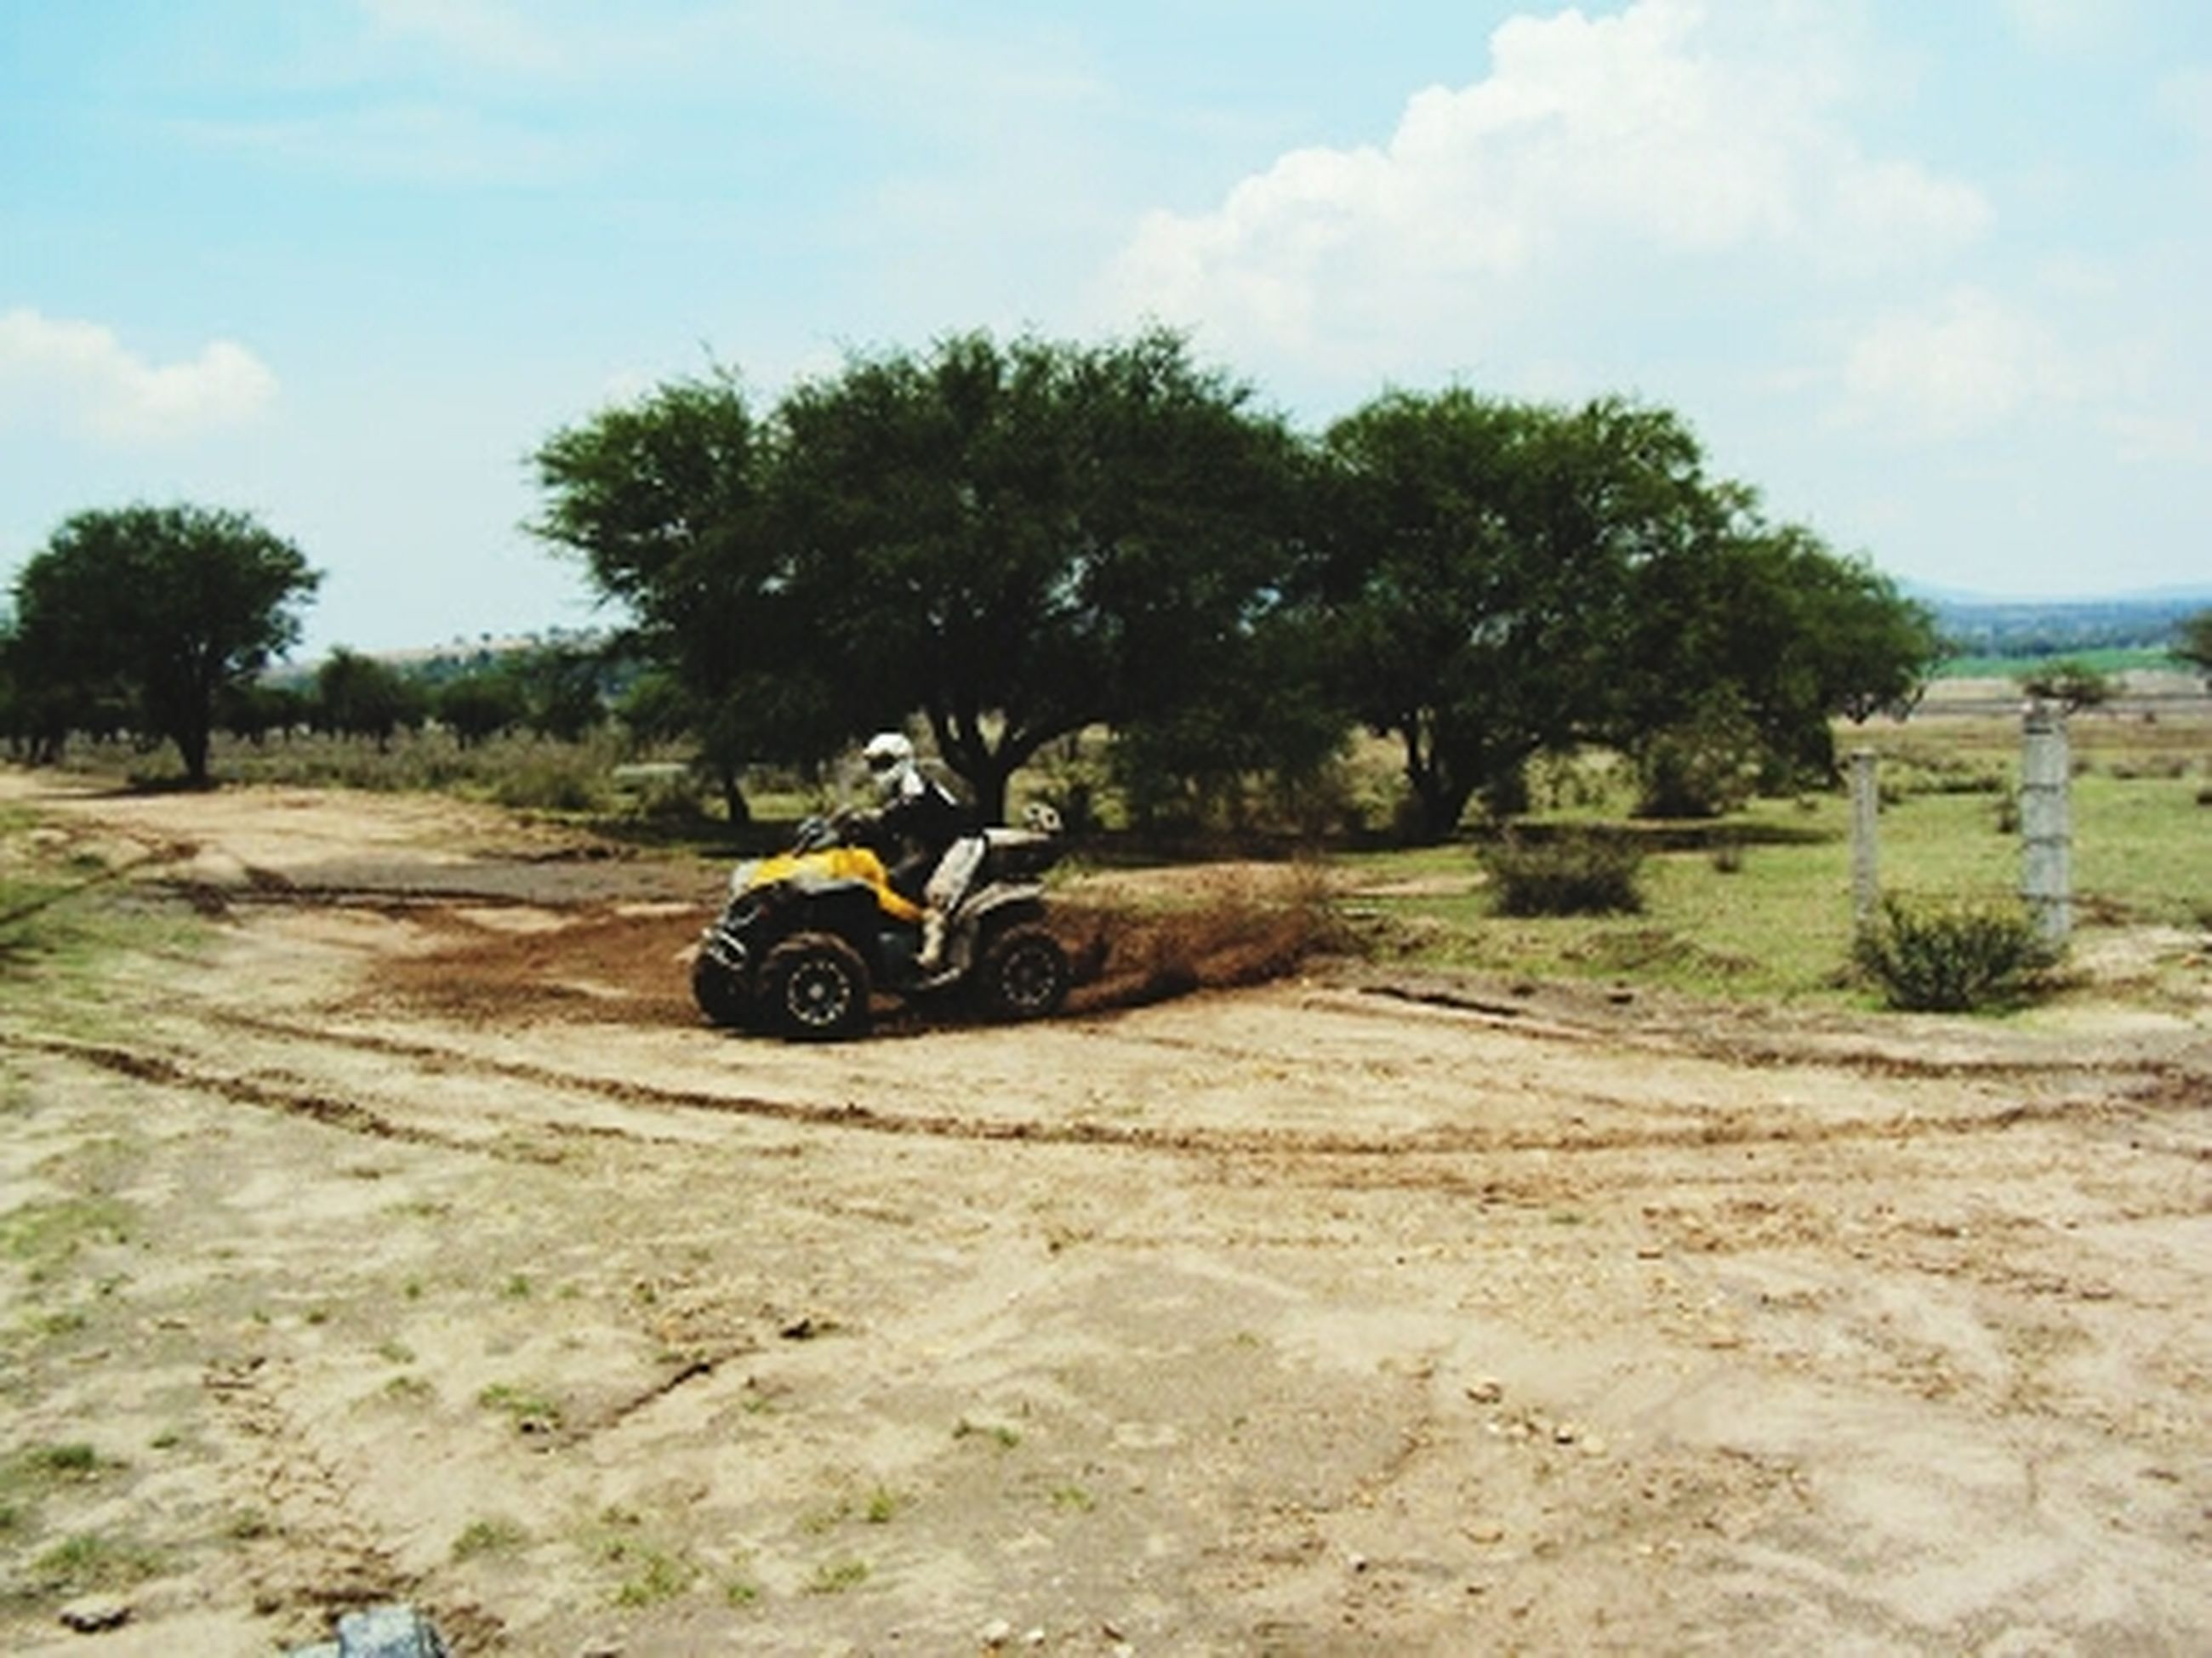 transportation, sky, land vehicle, tree, mode of transport, landscape, cloud - sky, dirt road, bicycle, road, nature, field, full length, day, riding, sand, cloud, tranquility